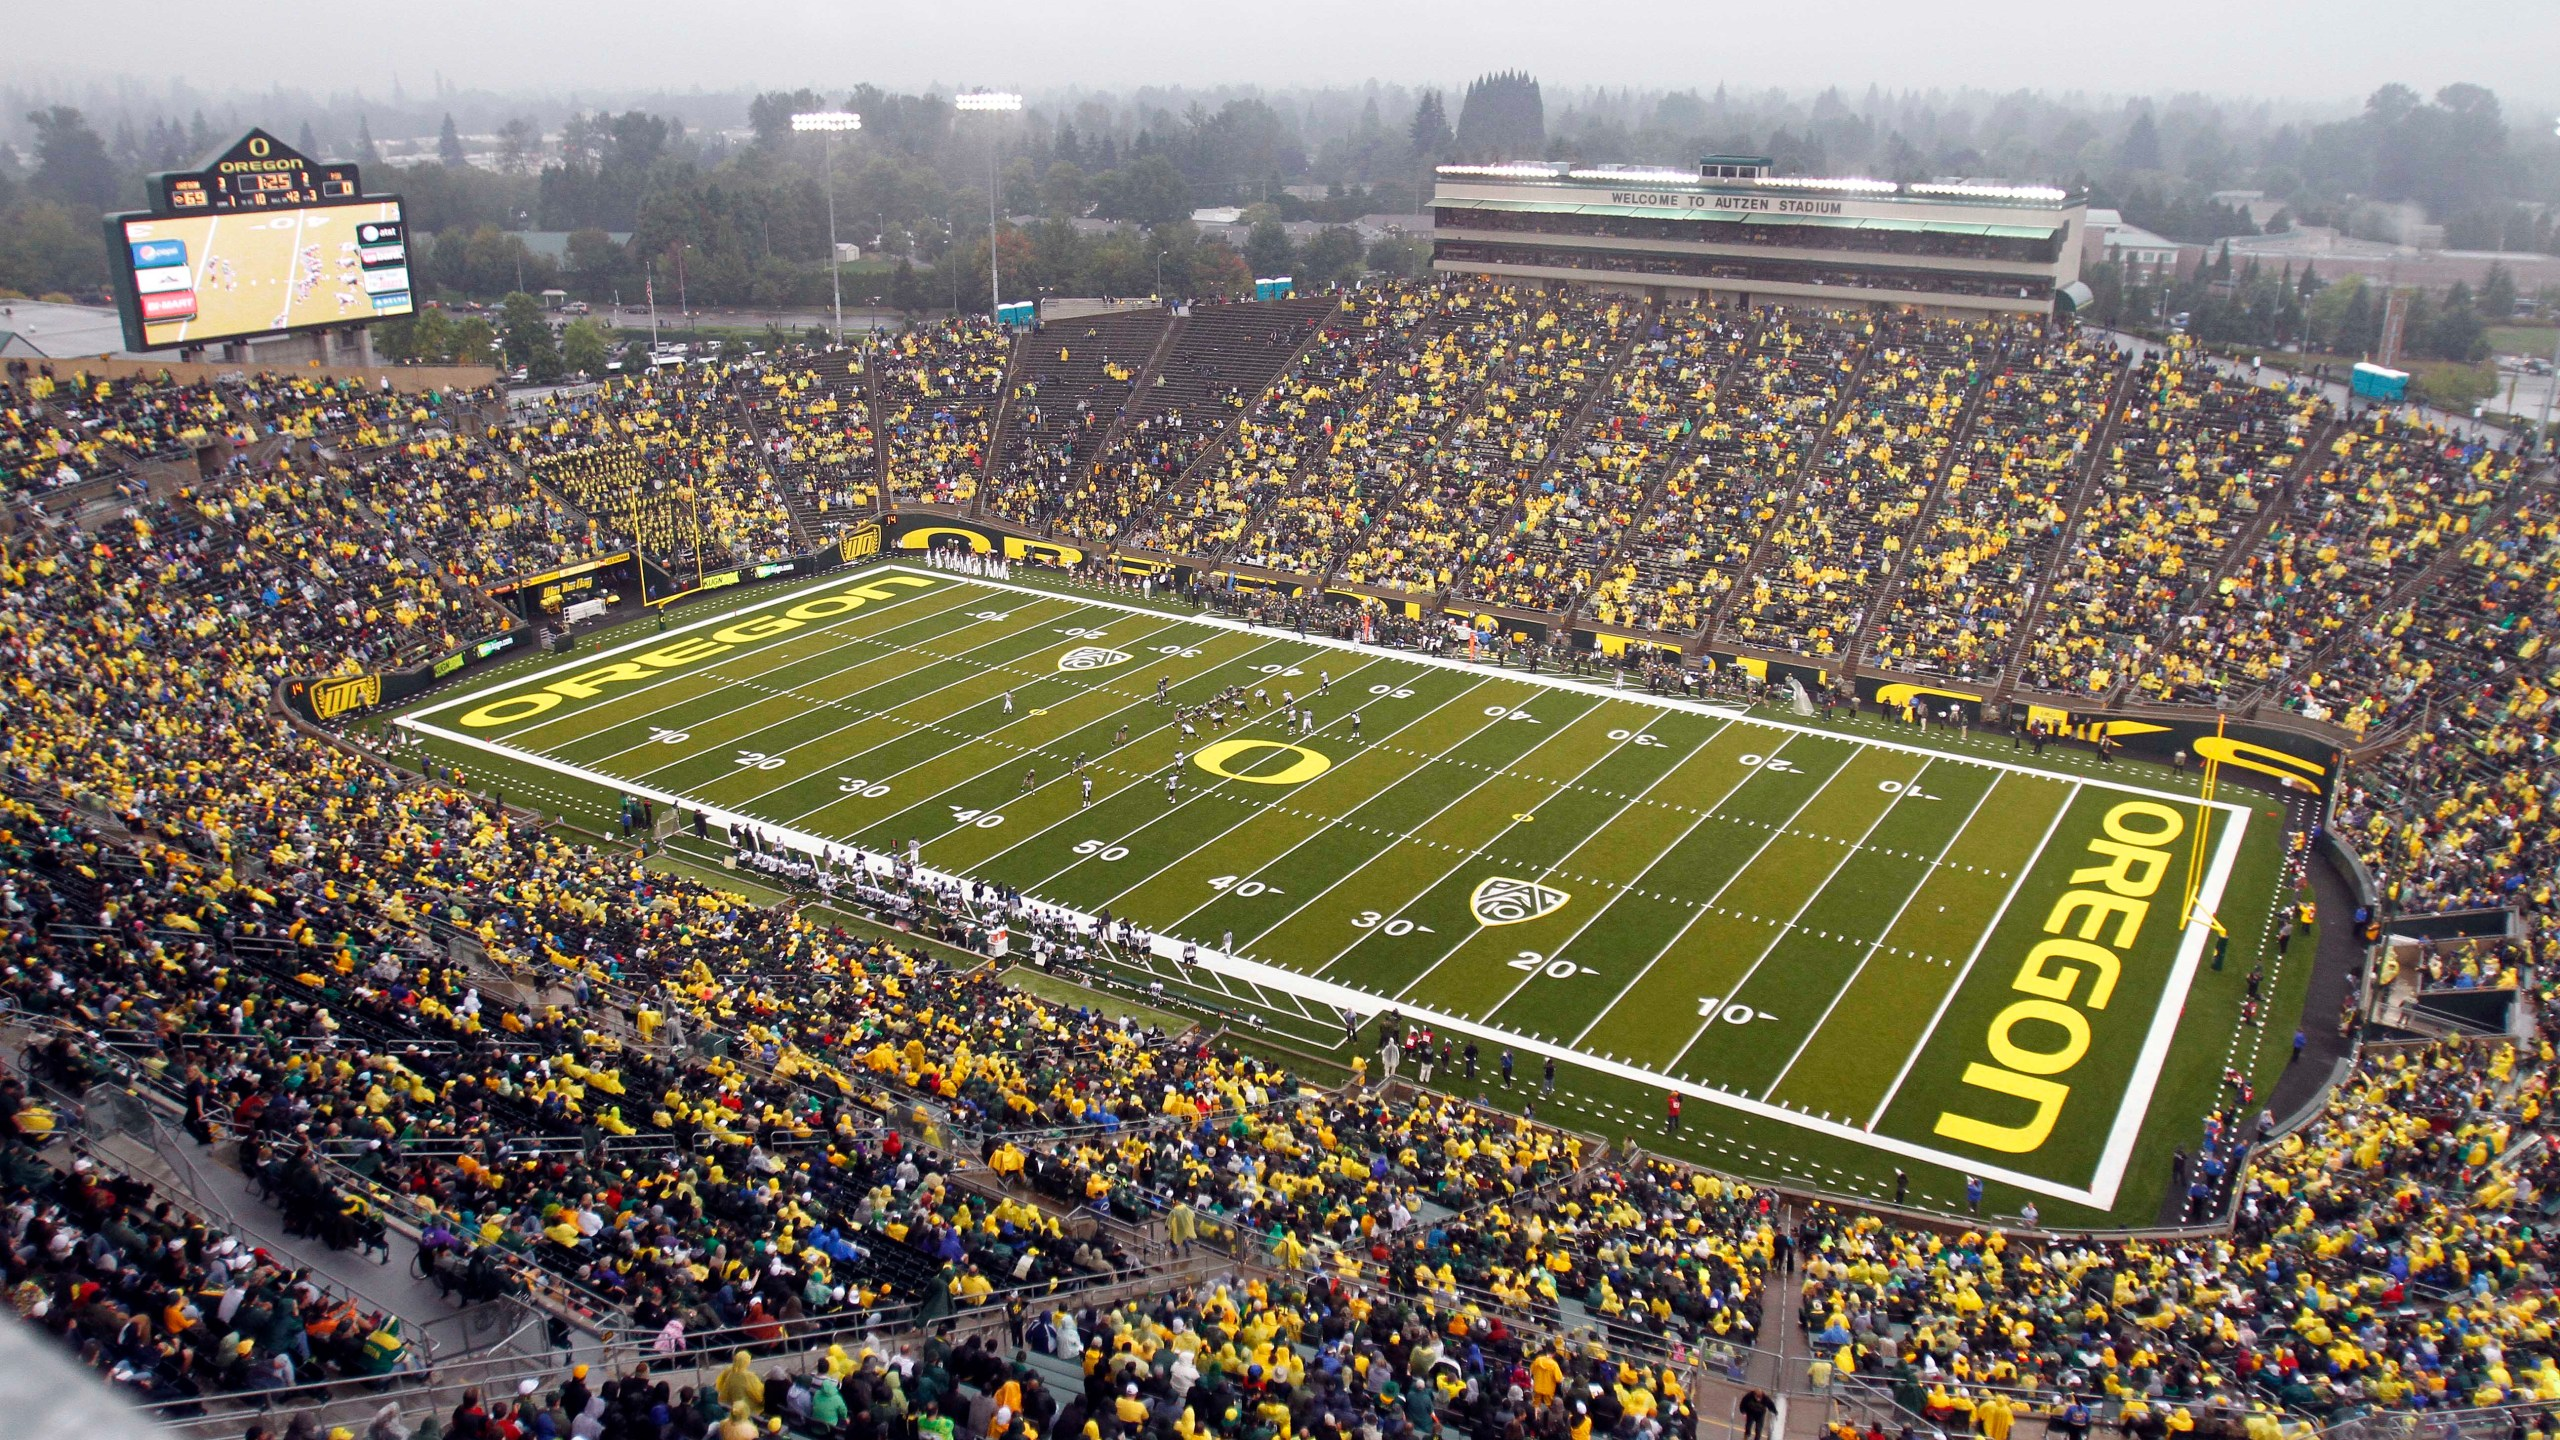 University of Oregon's Autzen Stadium